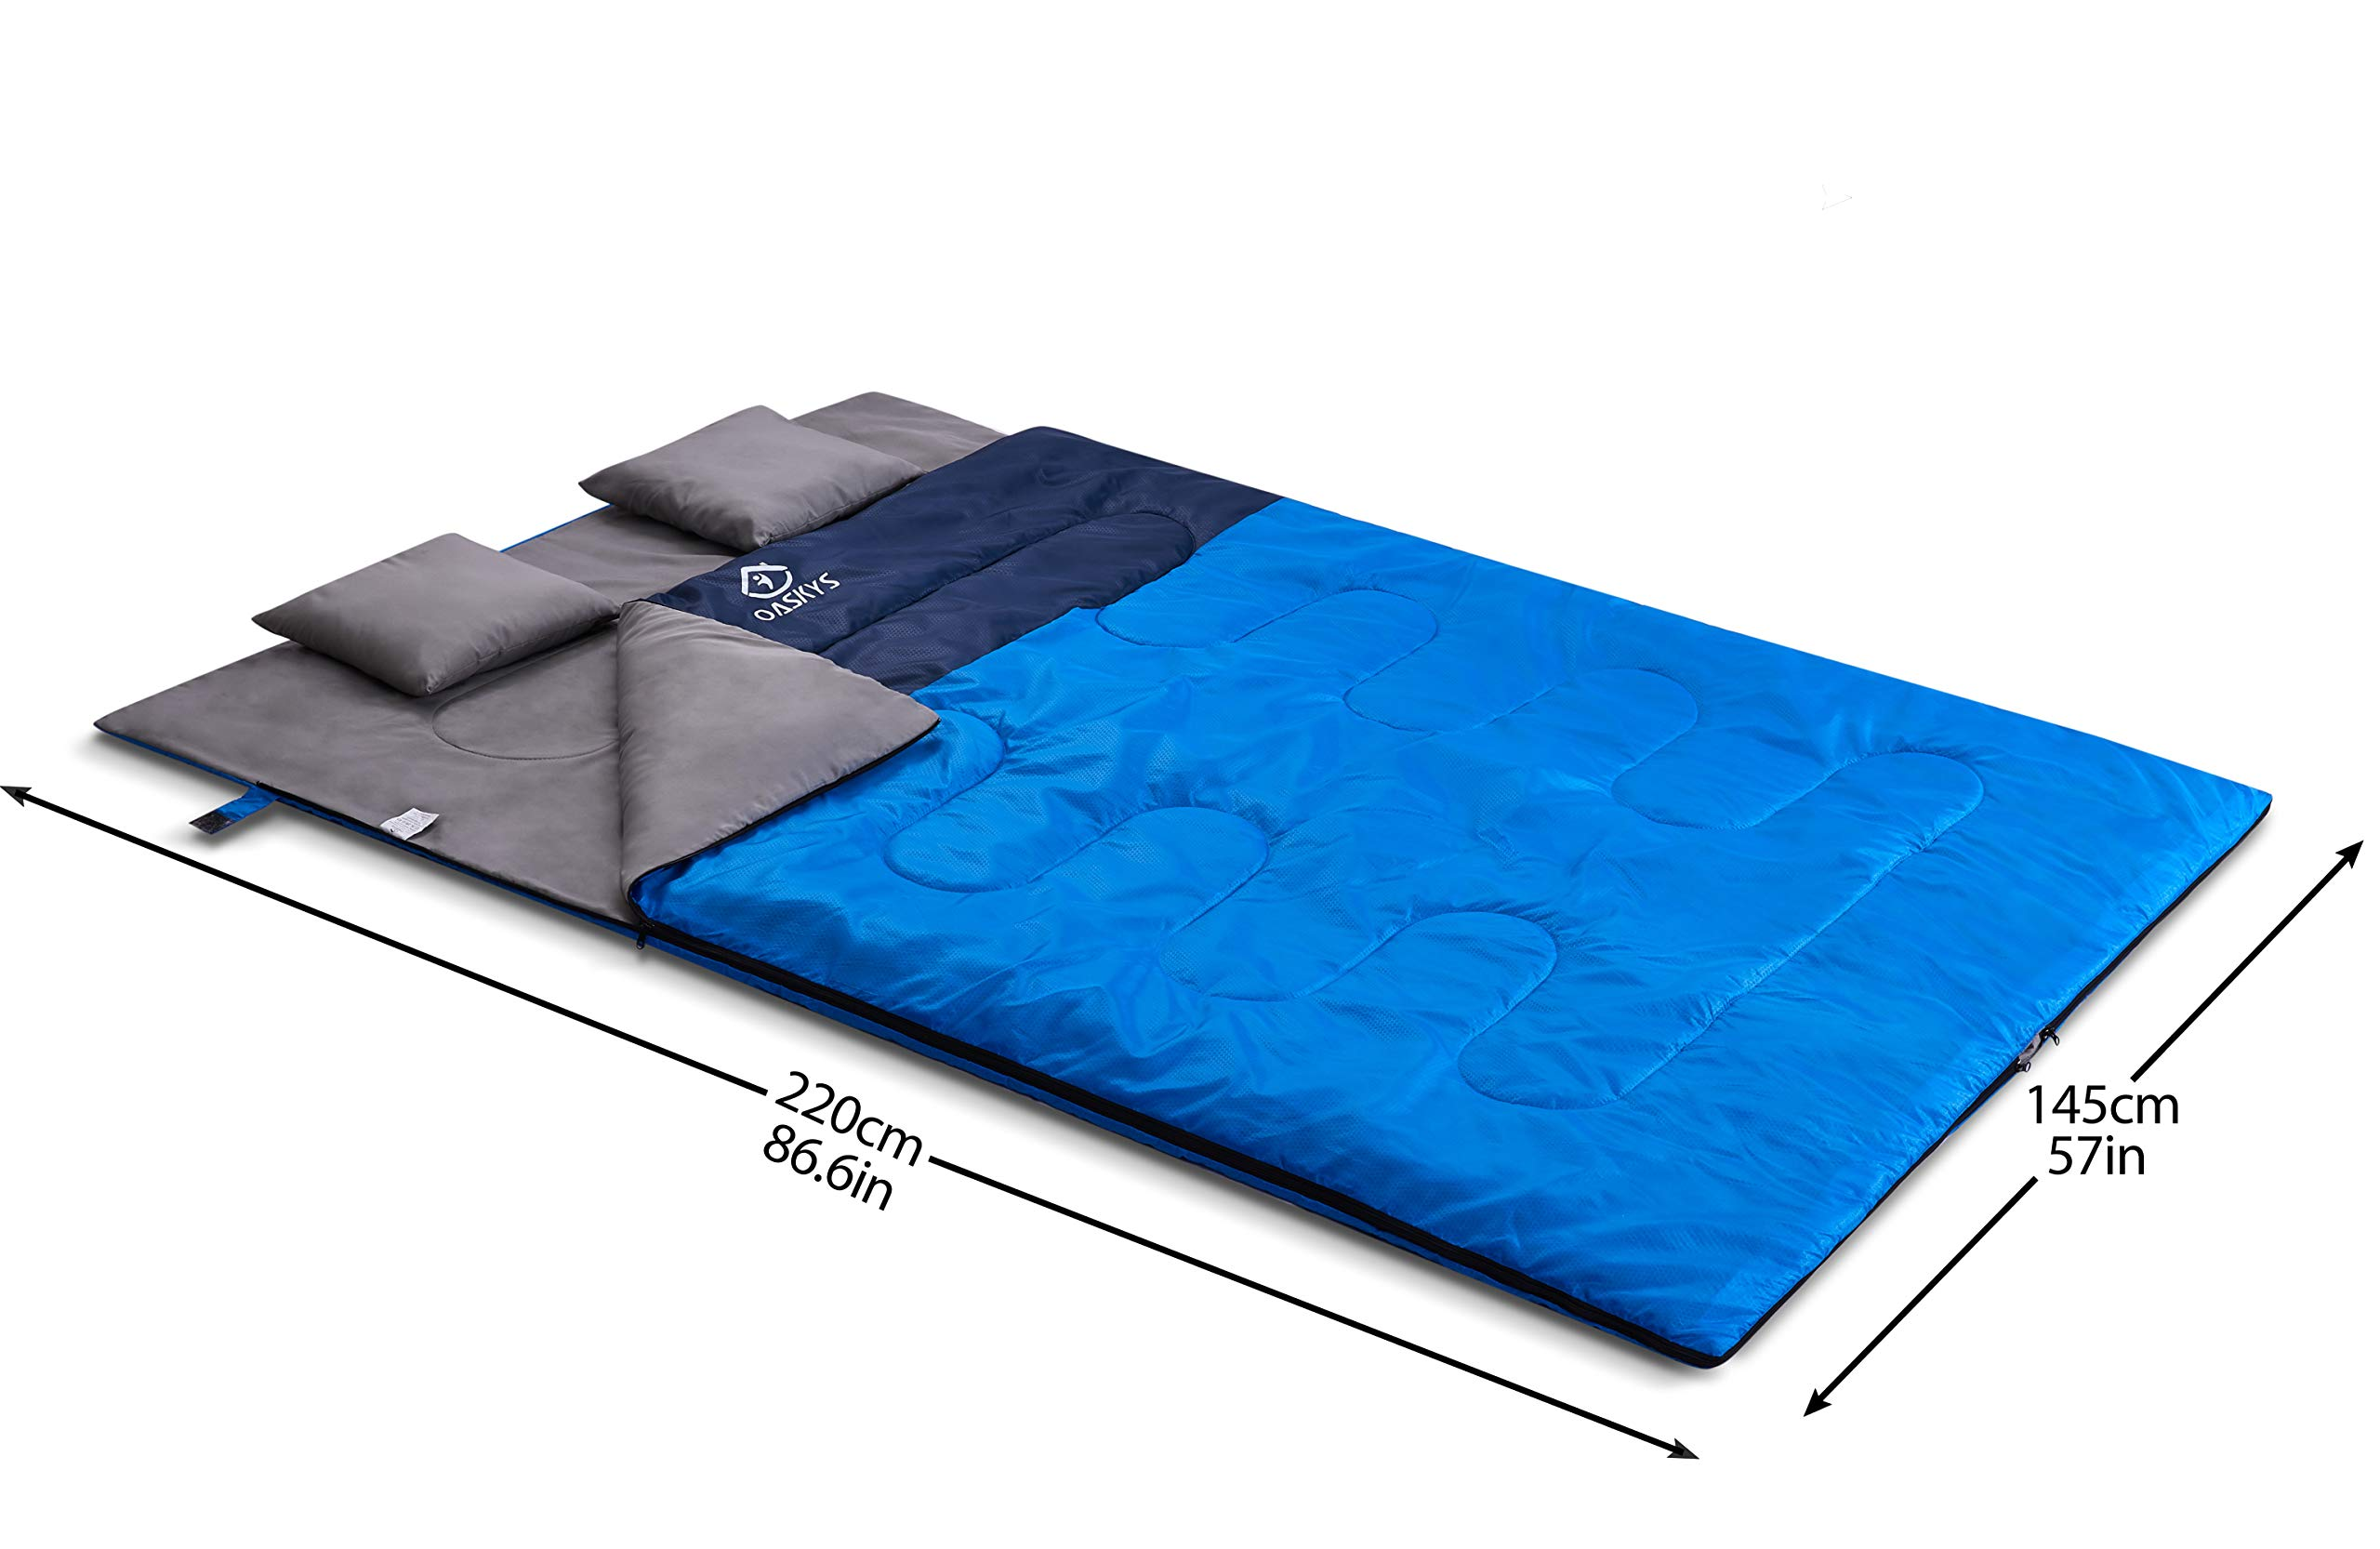 oaskys Camping Sleeping Bag - 3 Season Warm & Cool Weather - Summer, Spring, Fall, Lightweight, Waterproof for Adults & Kids - Camping Gear Equipment, Traveling, and Outdoors (Double Blue) 8